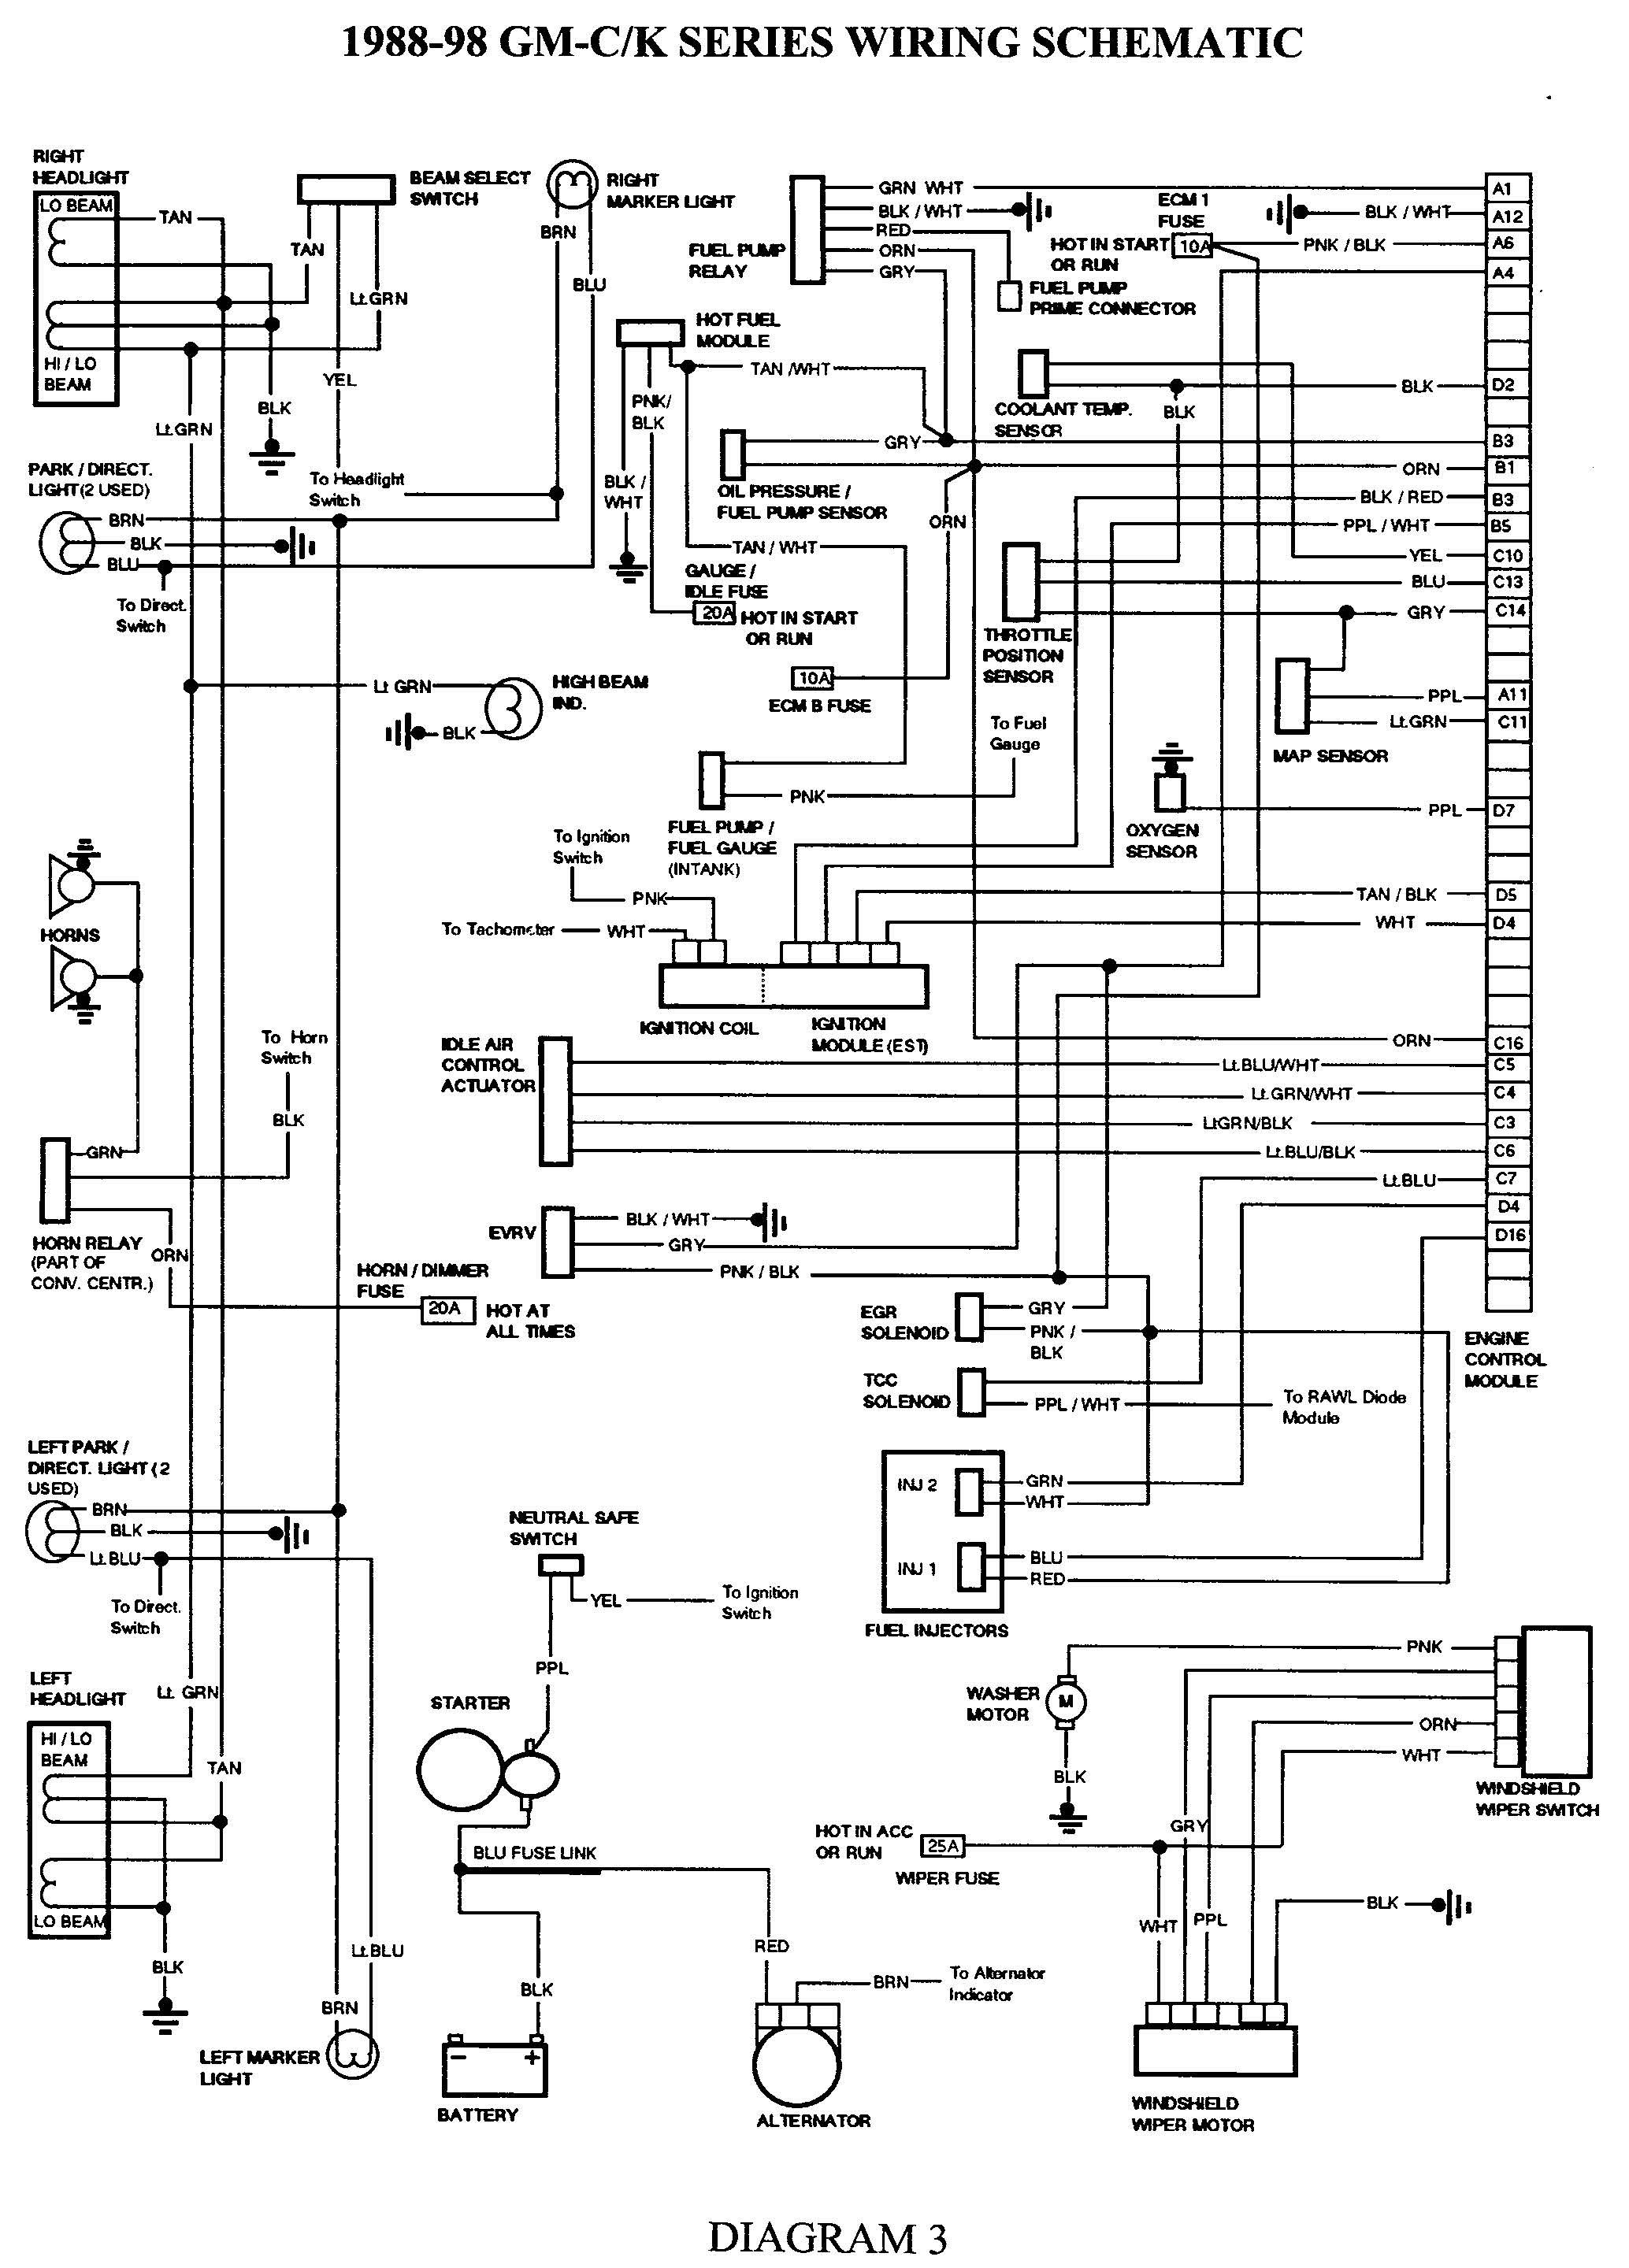 1986 chevrolet c10 5.7 v8 engine wiring diagram | Chevrolet C-1500: got a 88  chevy with a 4.3l engine and I cant